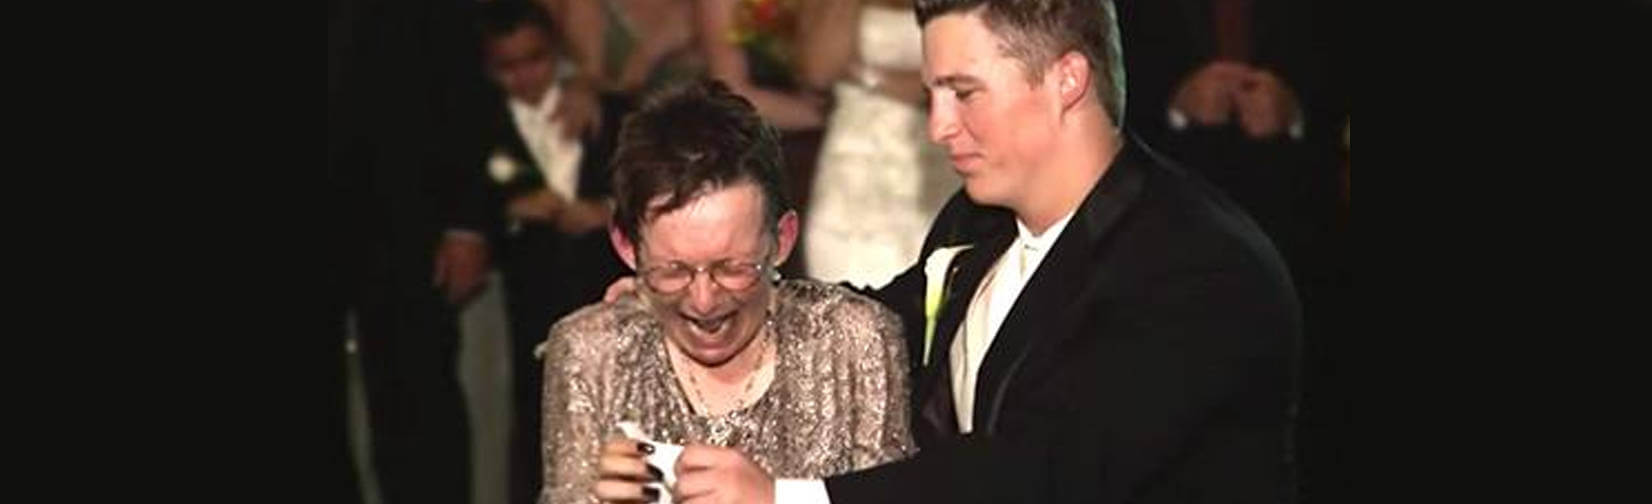 A Son's Last Dance, with his Mum